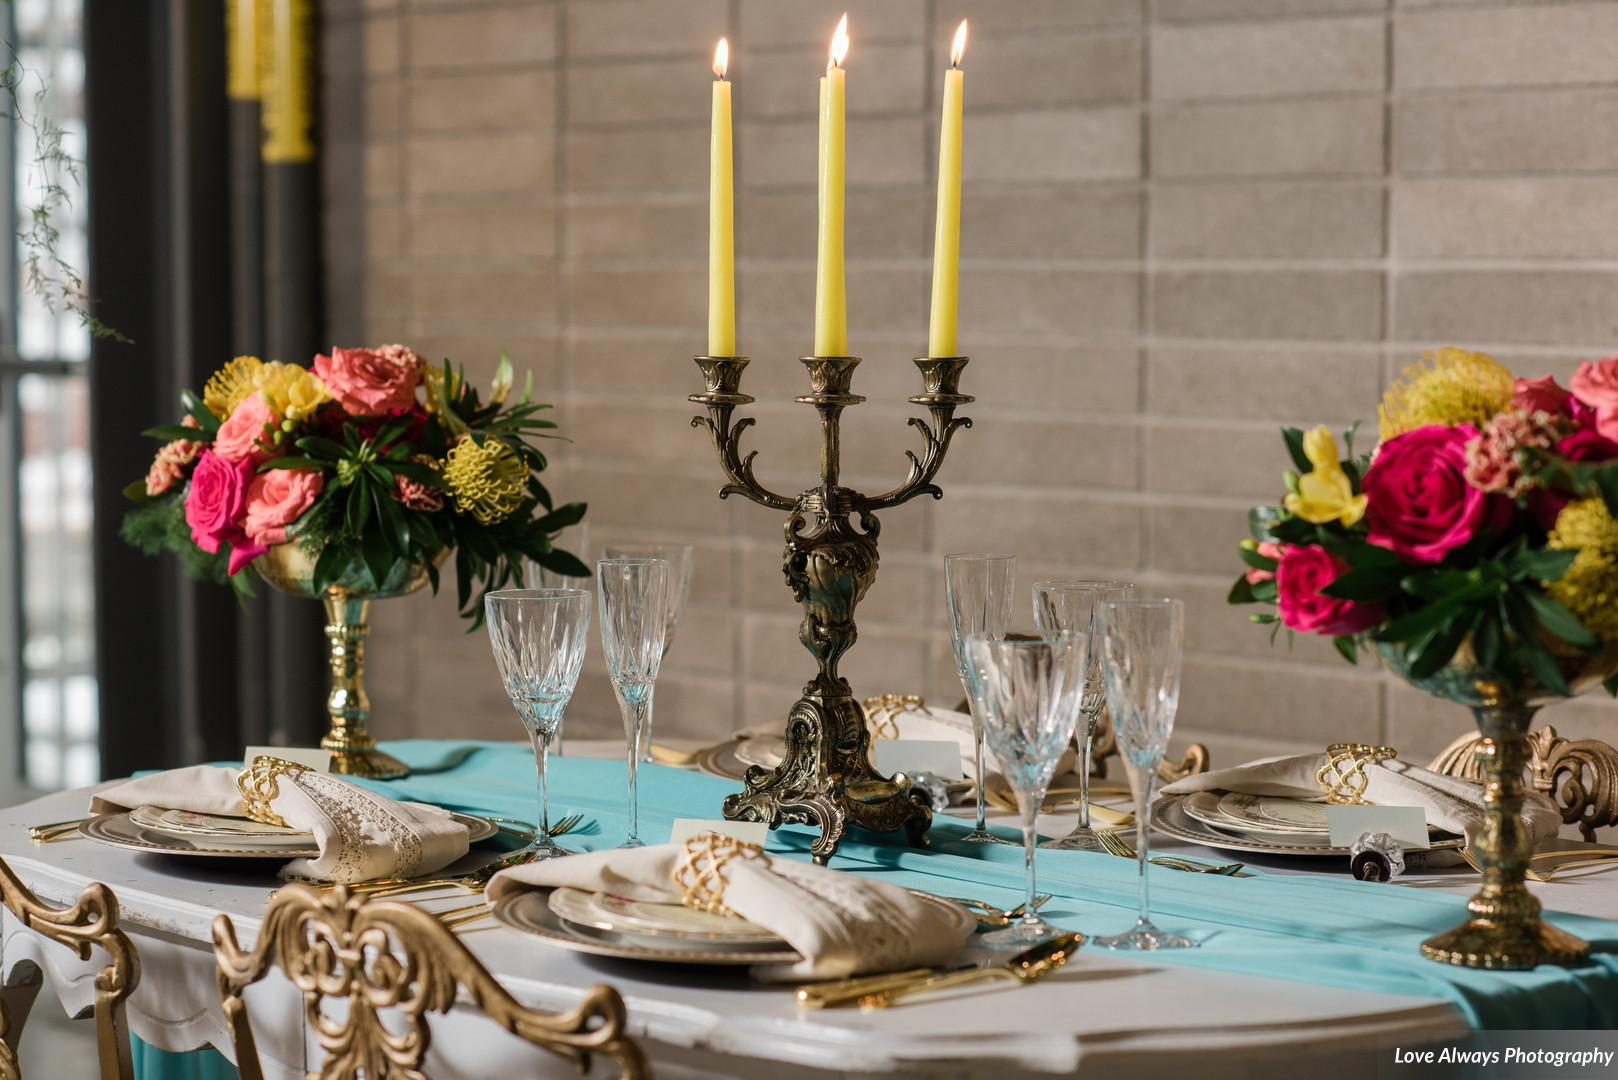 Intimate tropical dinner party with bright flowers and yellow candles